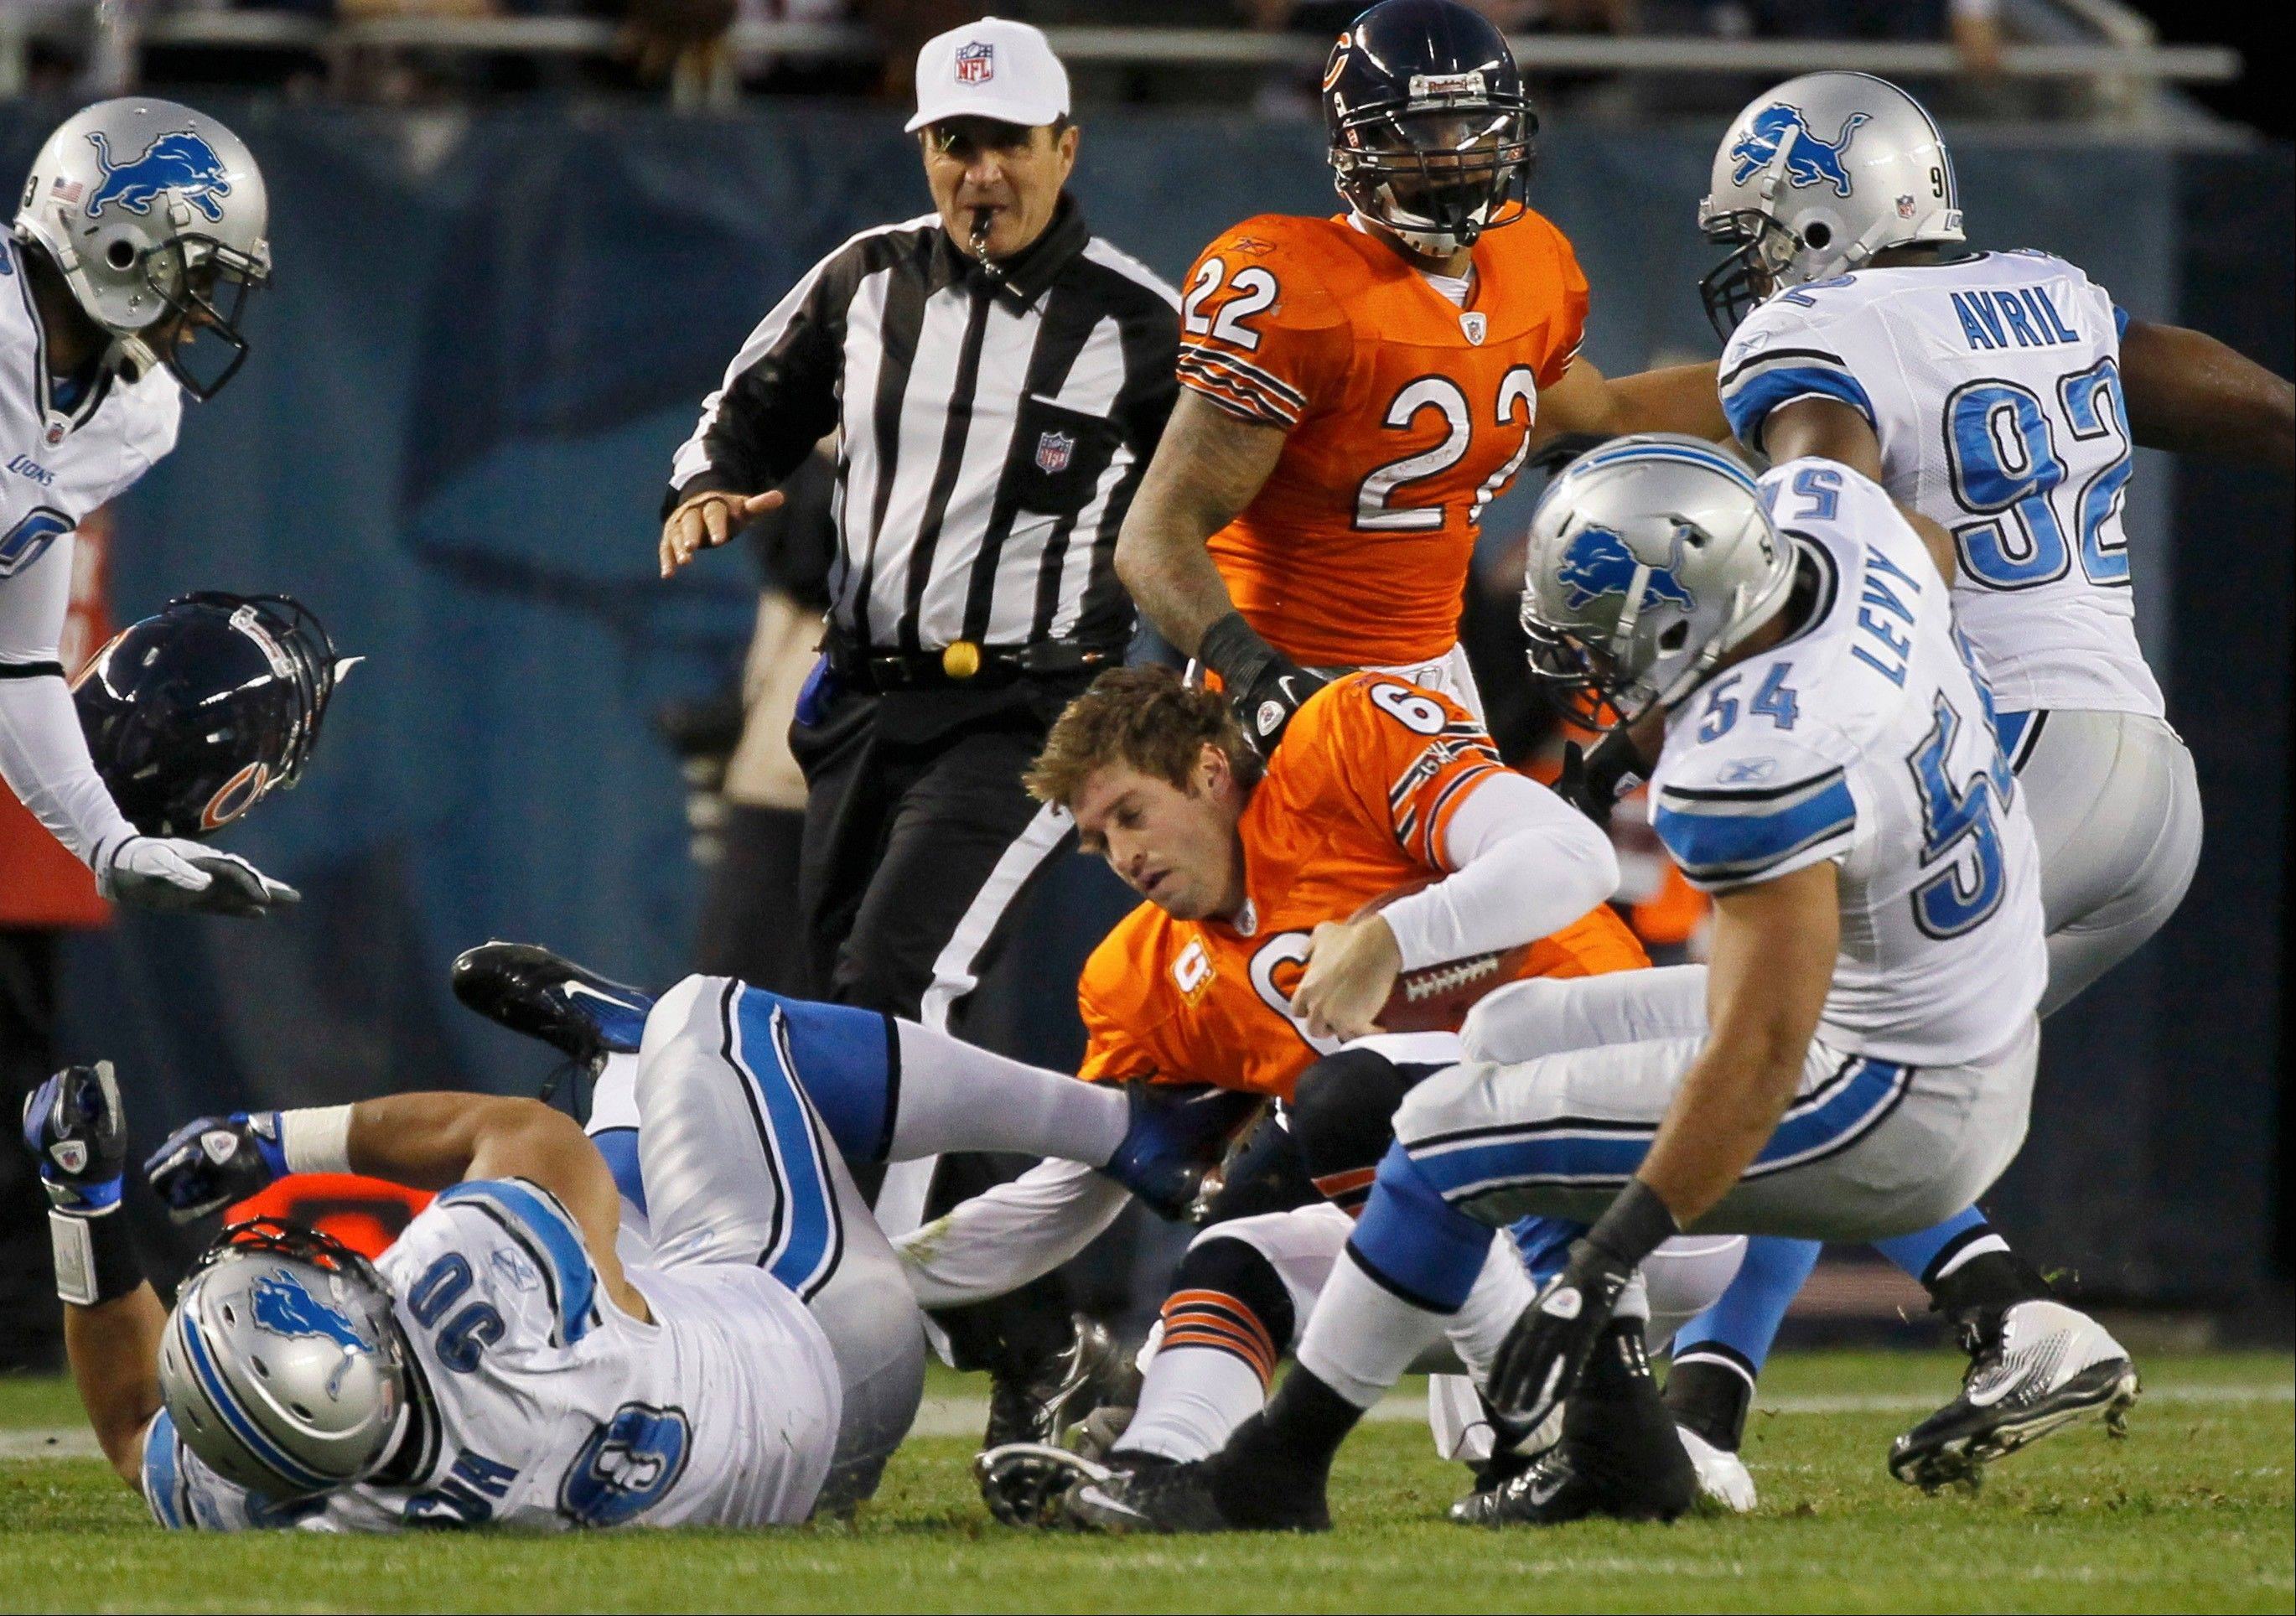 Chicago Bears quarterback Jay Cutler (6) loses his helmet as he is sacked by Detroit Lions defenders Ndamukong Suh (90), DeAndre Levy (54), and Cliff Avril (92) in the first half of an NFL football game, Sunday, Nov. 13, 2011, in Chicago.